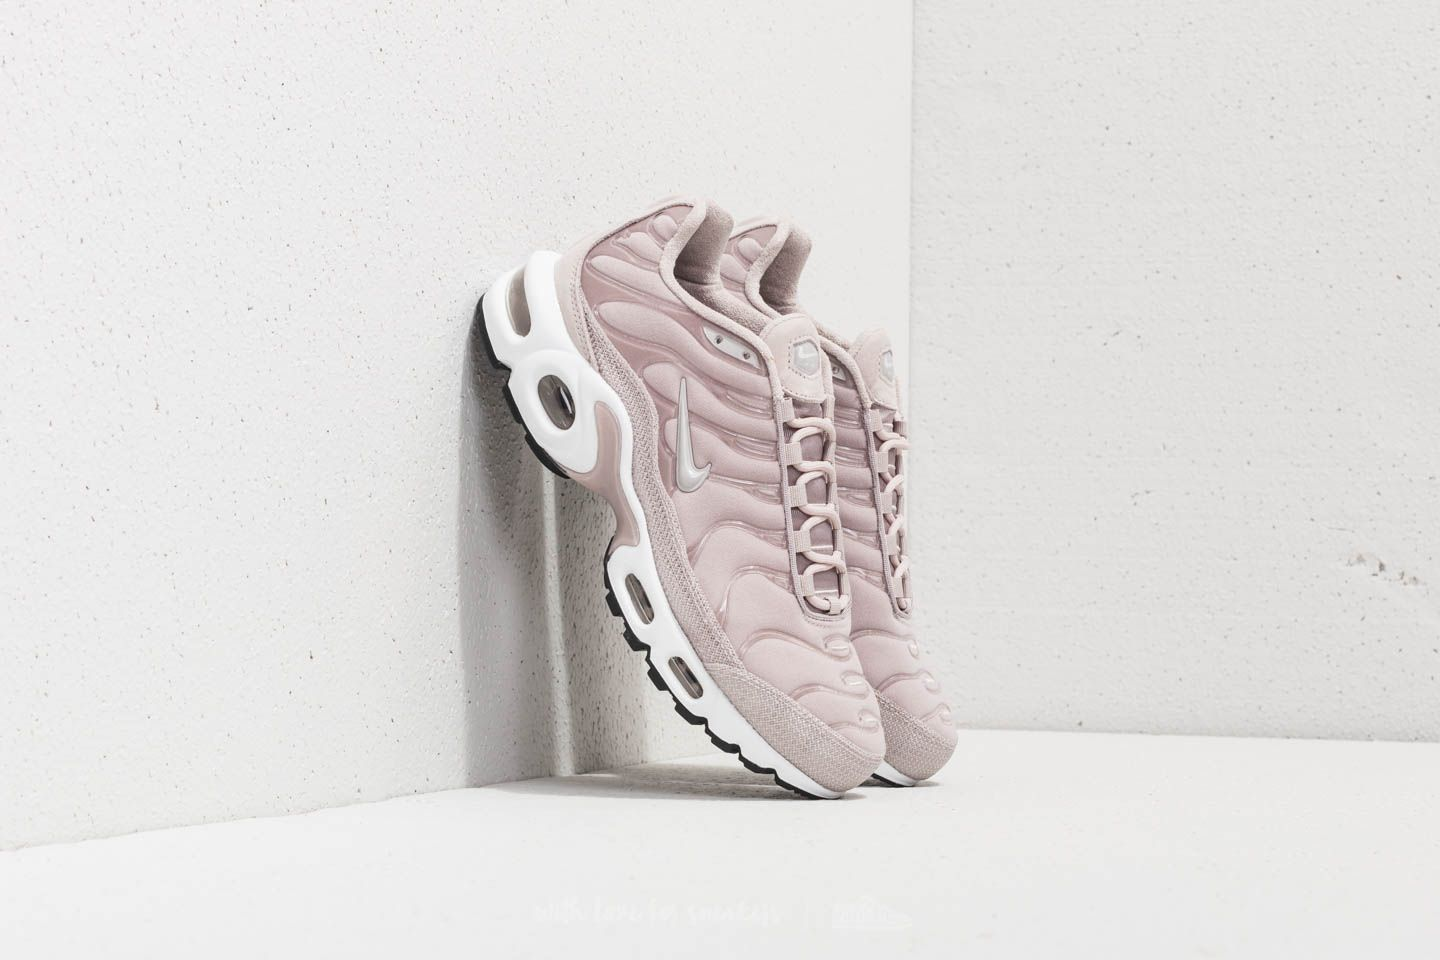 e8216d022cd3 Nike Wmns Air Max Plus Premium Moon Particle  Moon Particle